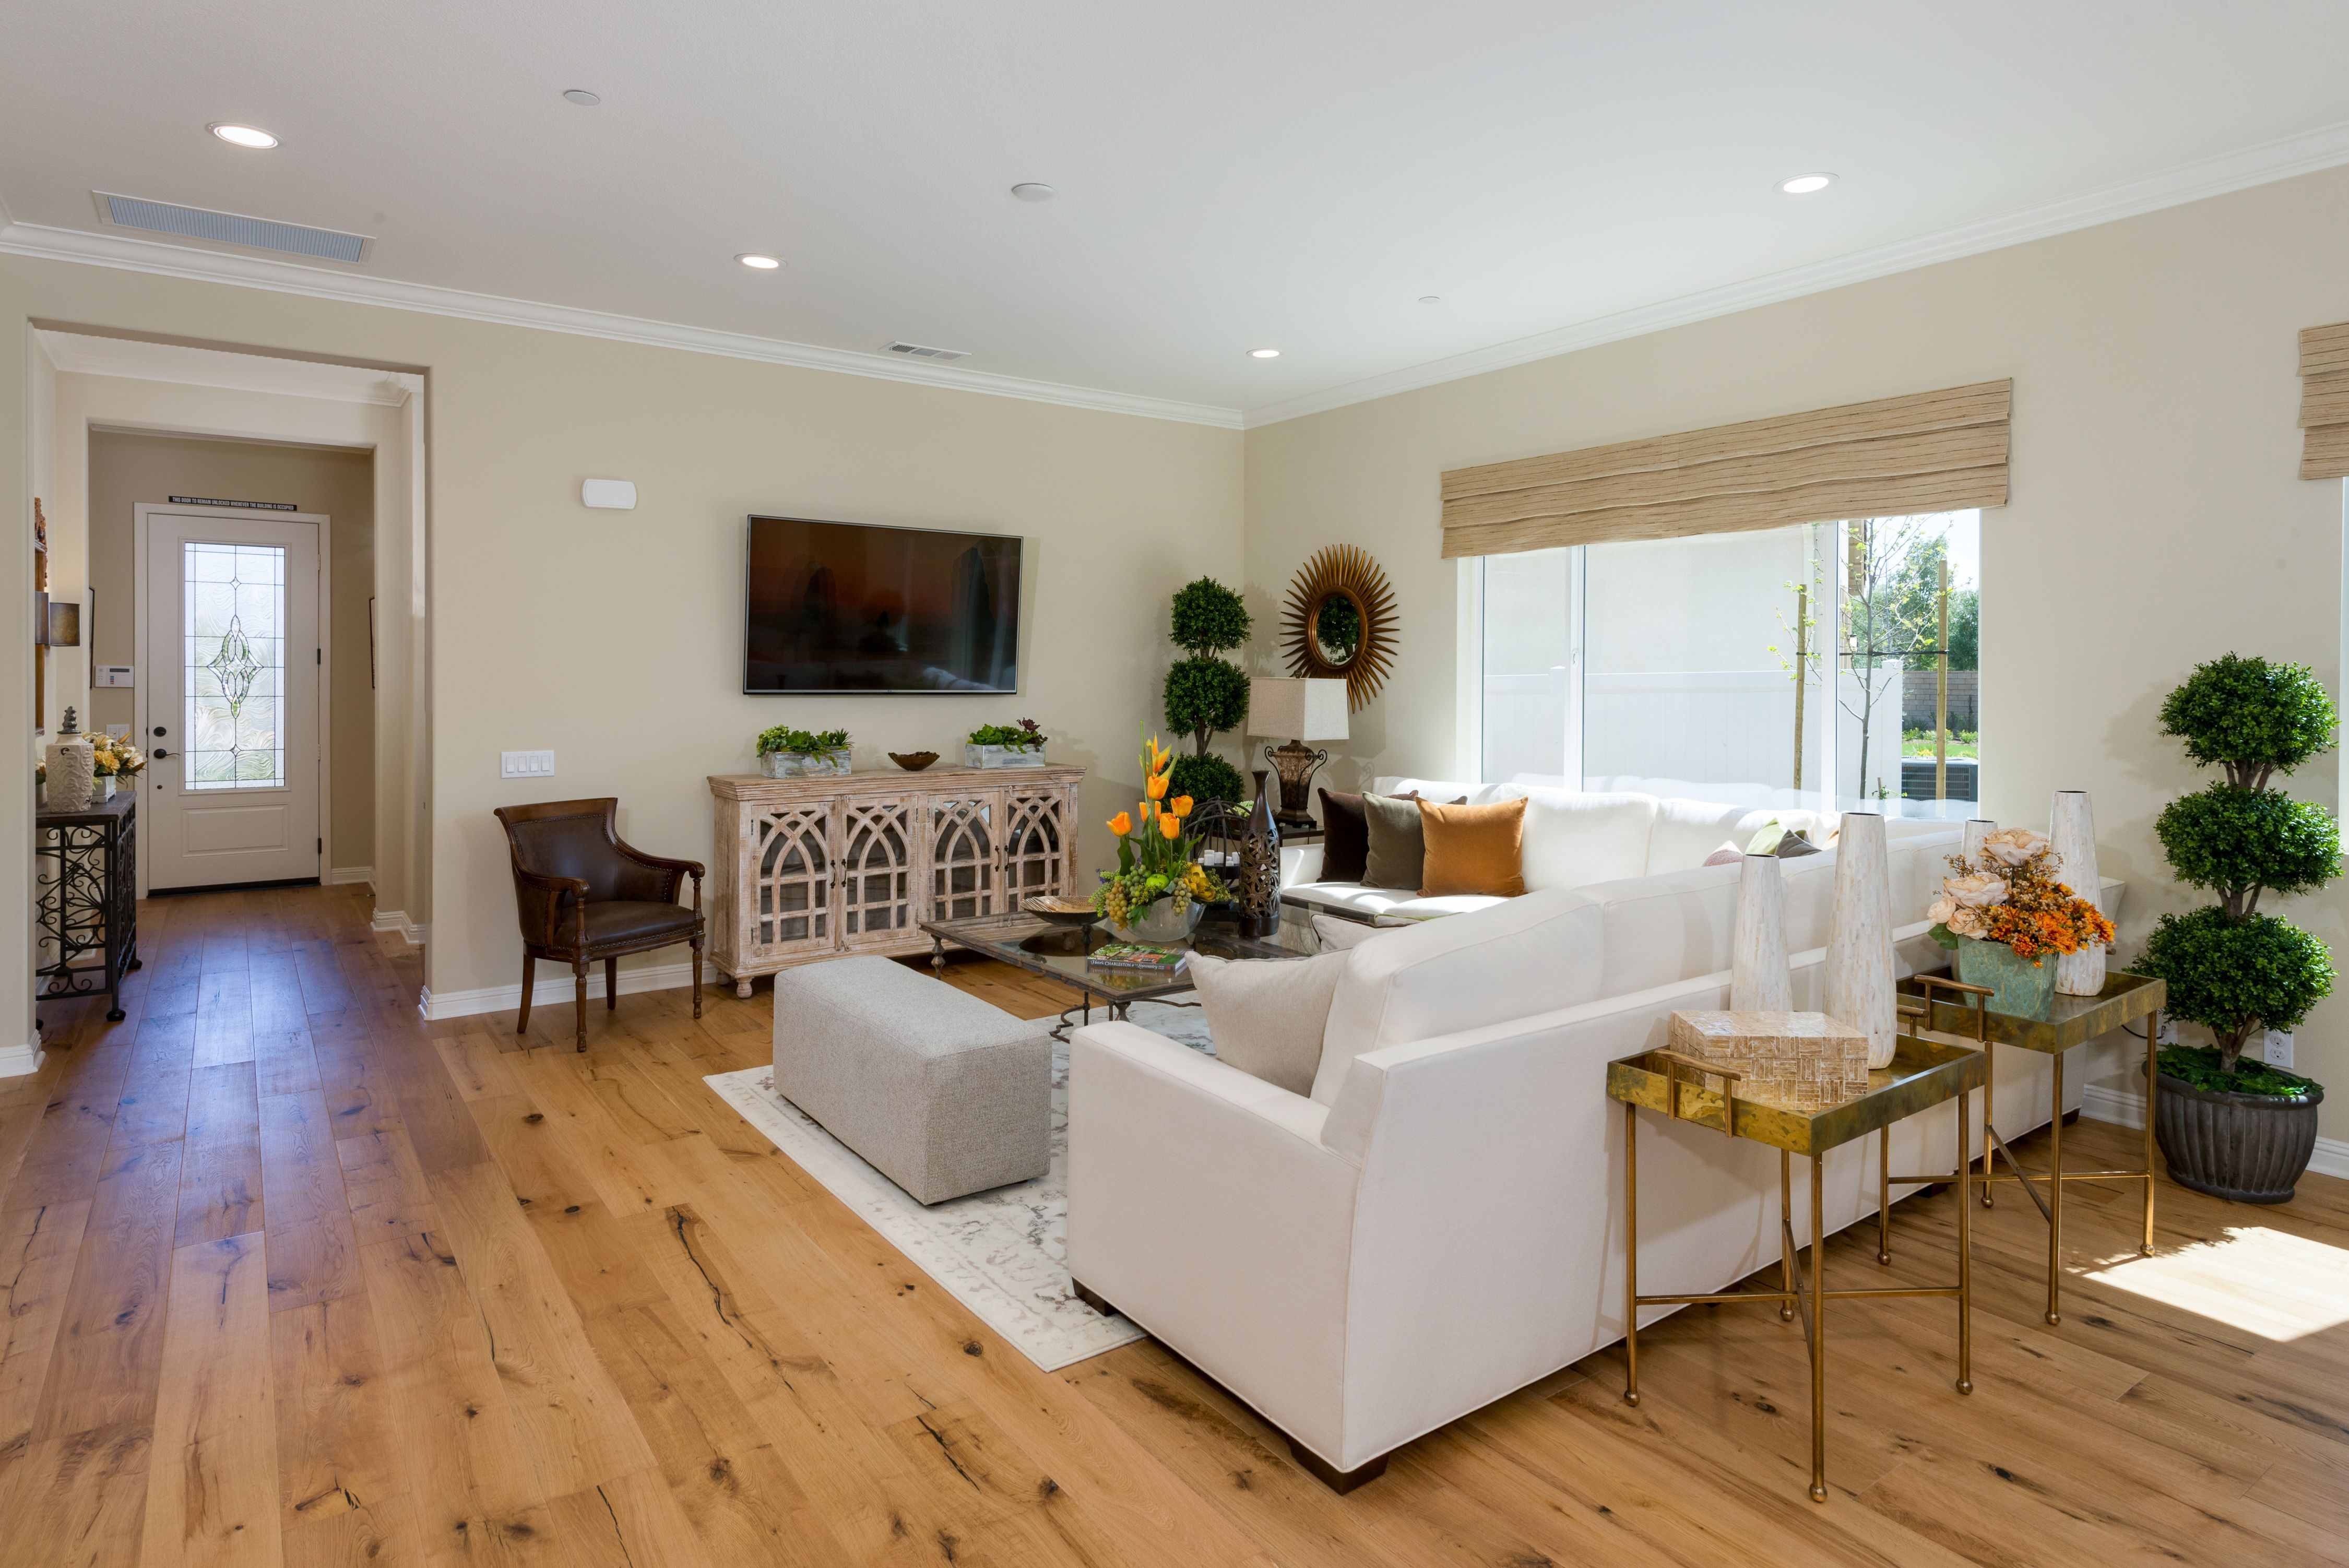 Pacific Mayfield Is Community Located In Menifee, California. With A  Population Nearing Menifee Offers A Convenient Location In Desirable  Western Riverside ...